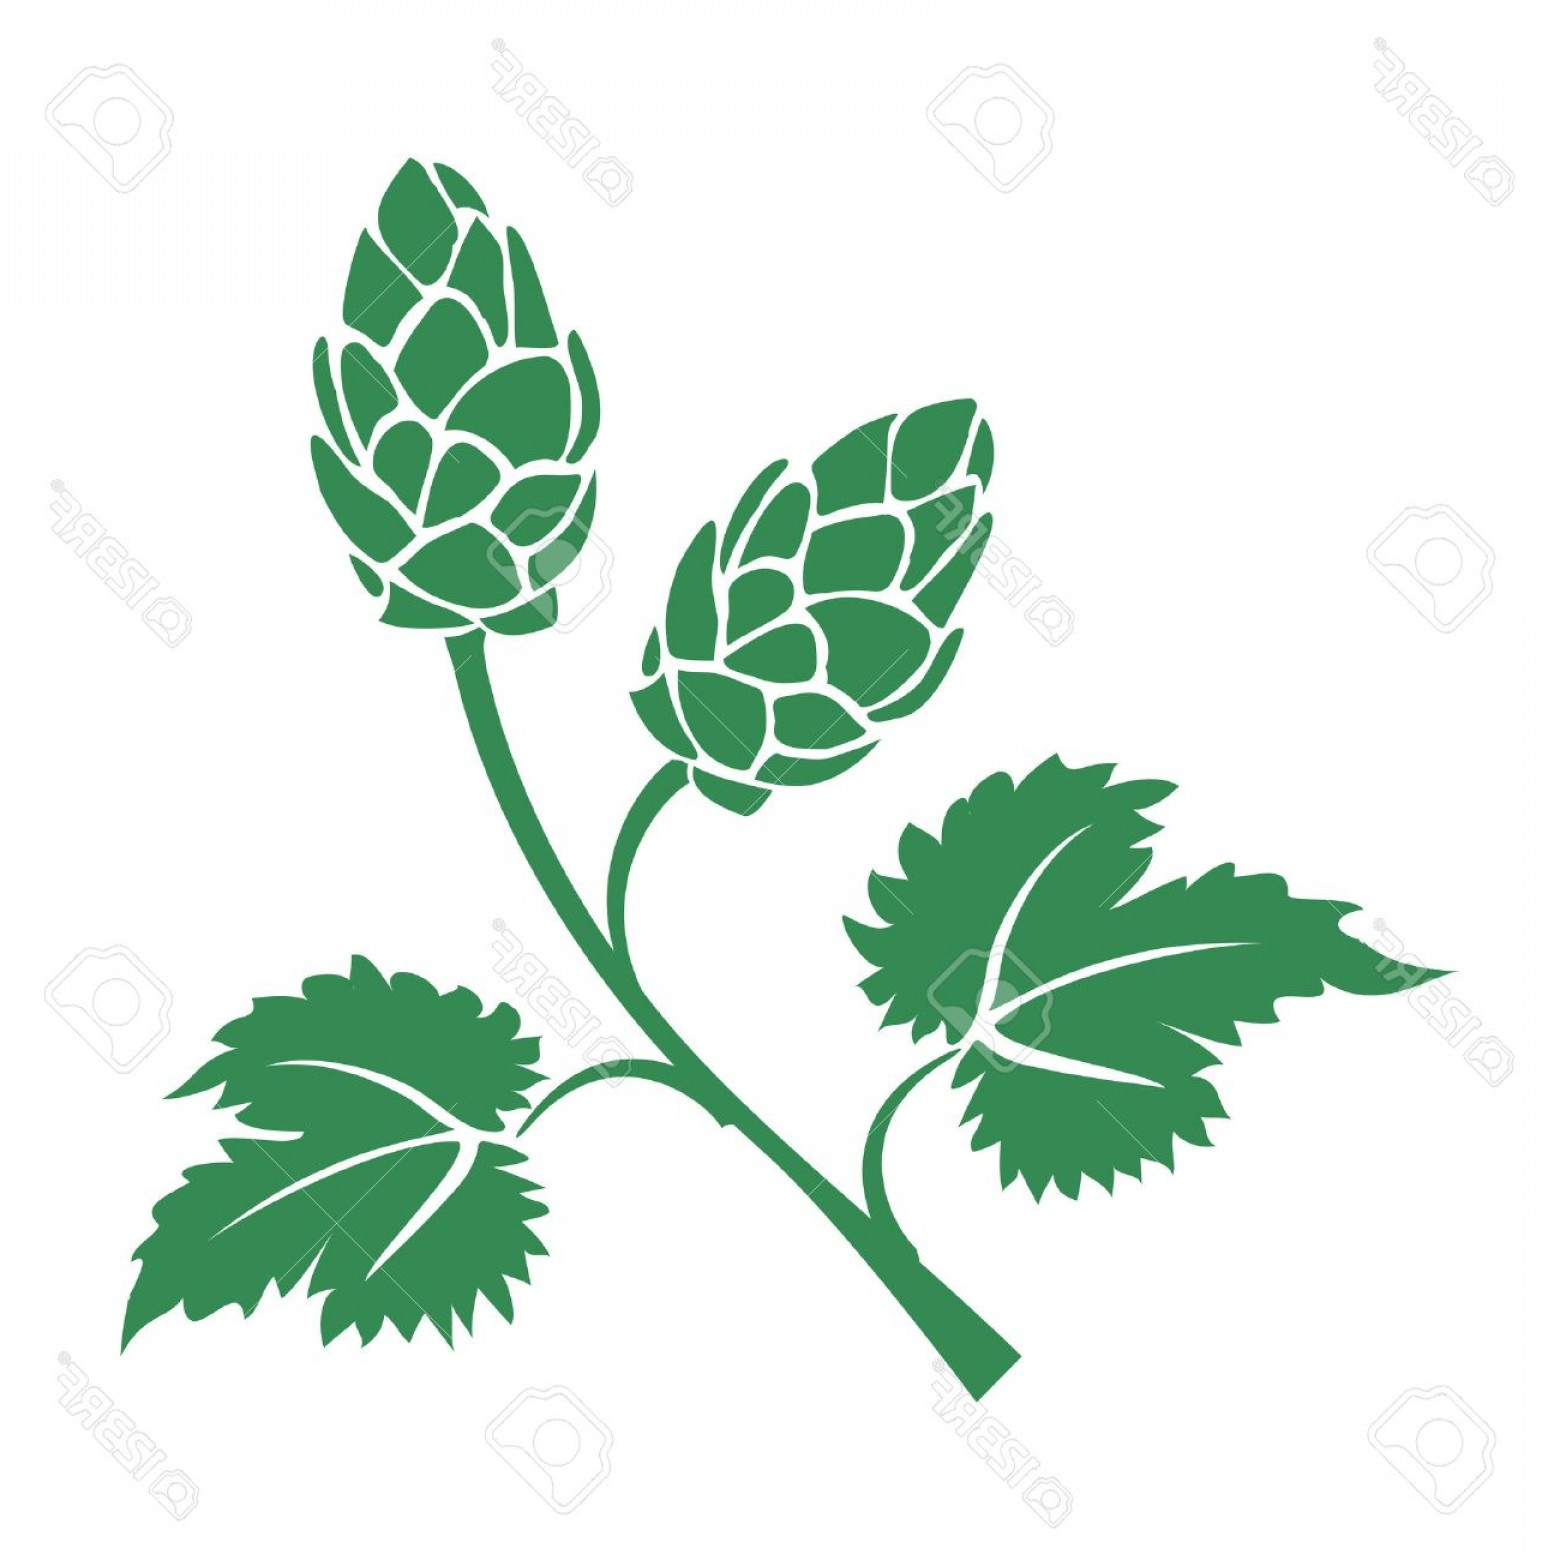 Beer Hops Vector: Photostock Vector Green Vector Silhouette Hops Icon With Leaves And Cone Like Flowers Used In The Brewing Industry To